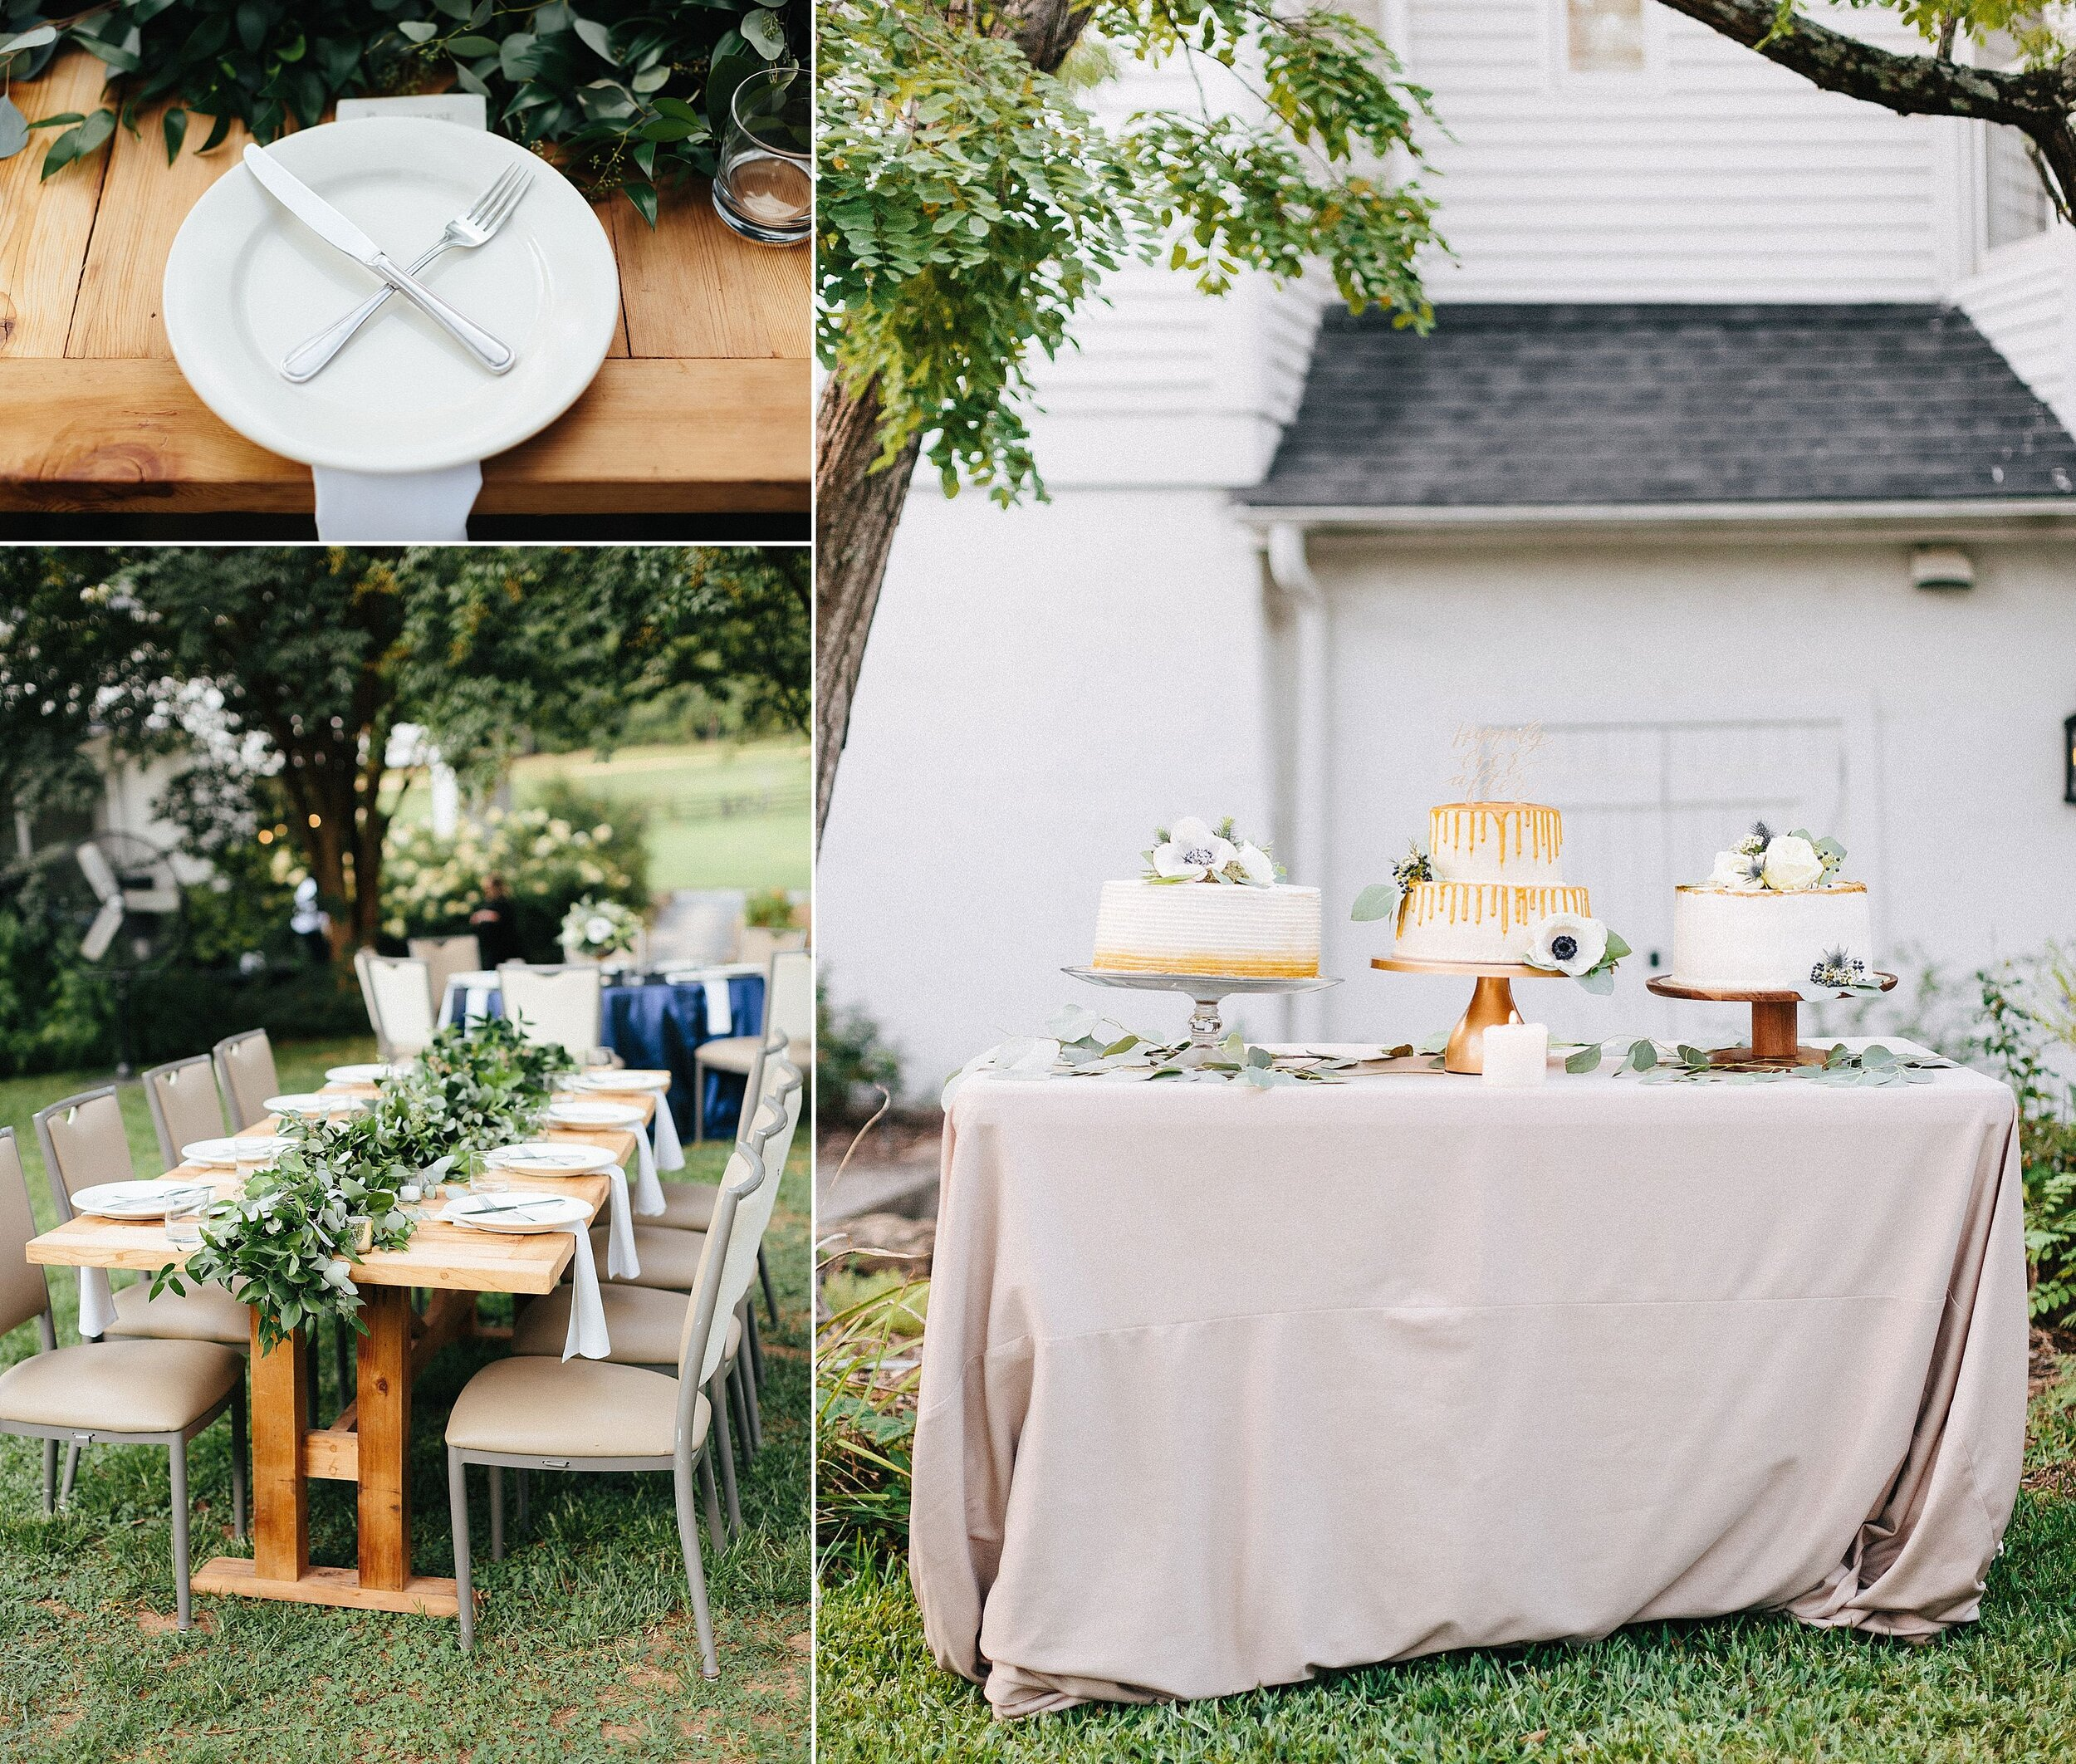 serenbe_forest_summer_wedding_farmhouse_guest_house_garden_3001.jpg